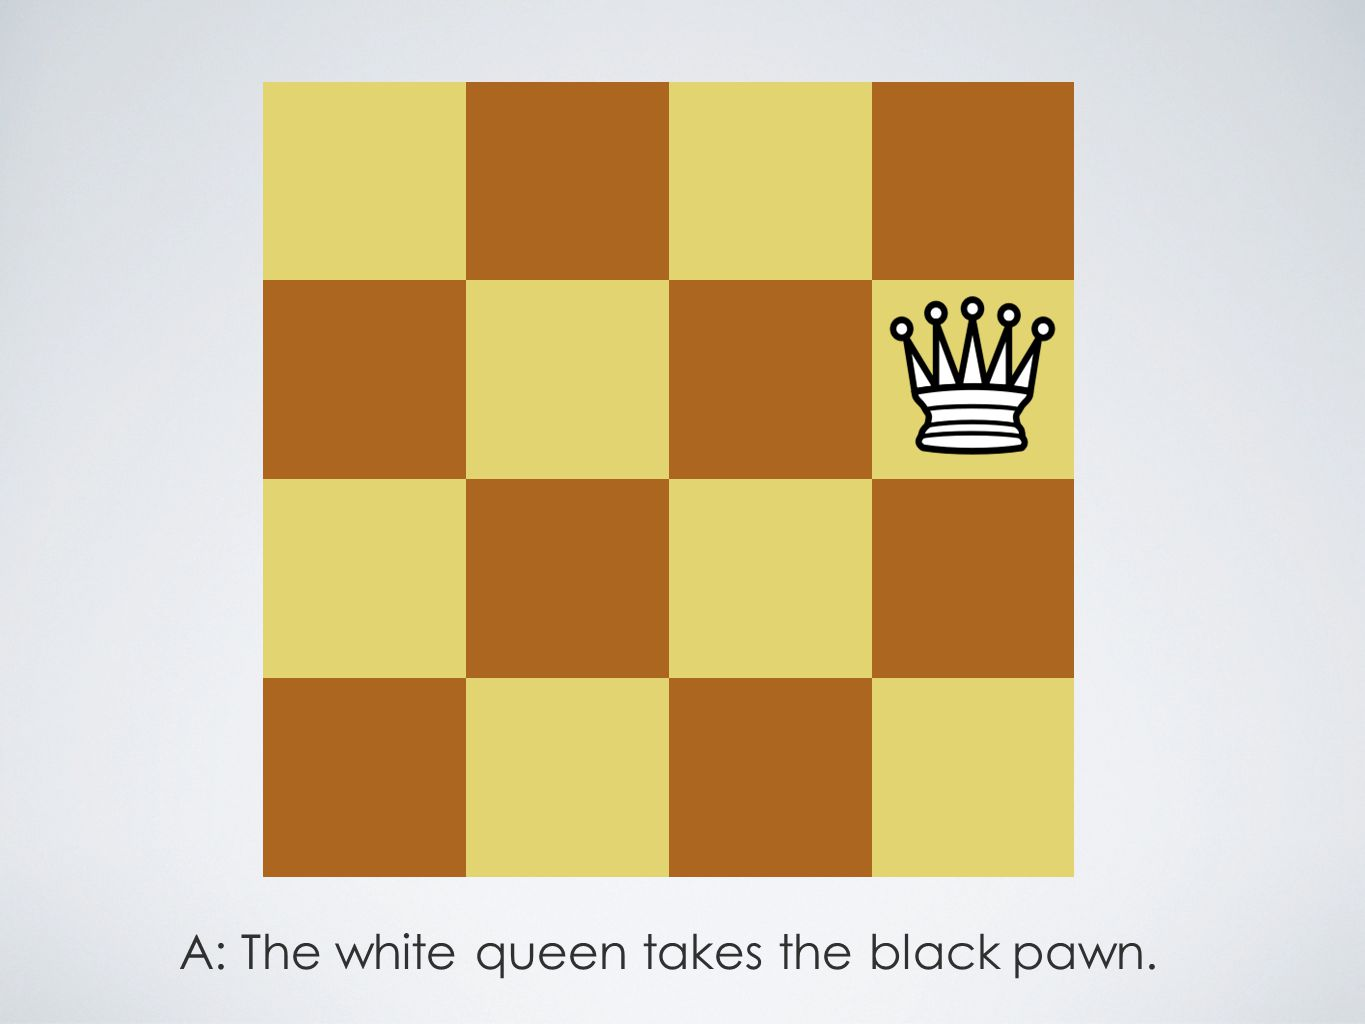 A: The white queen takes the black pawn.